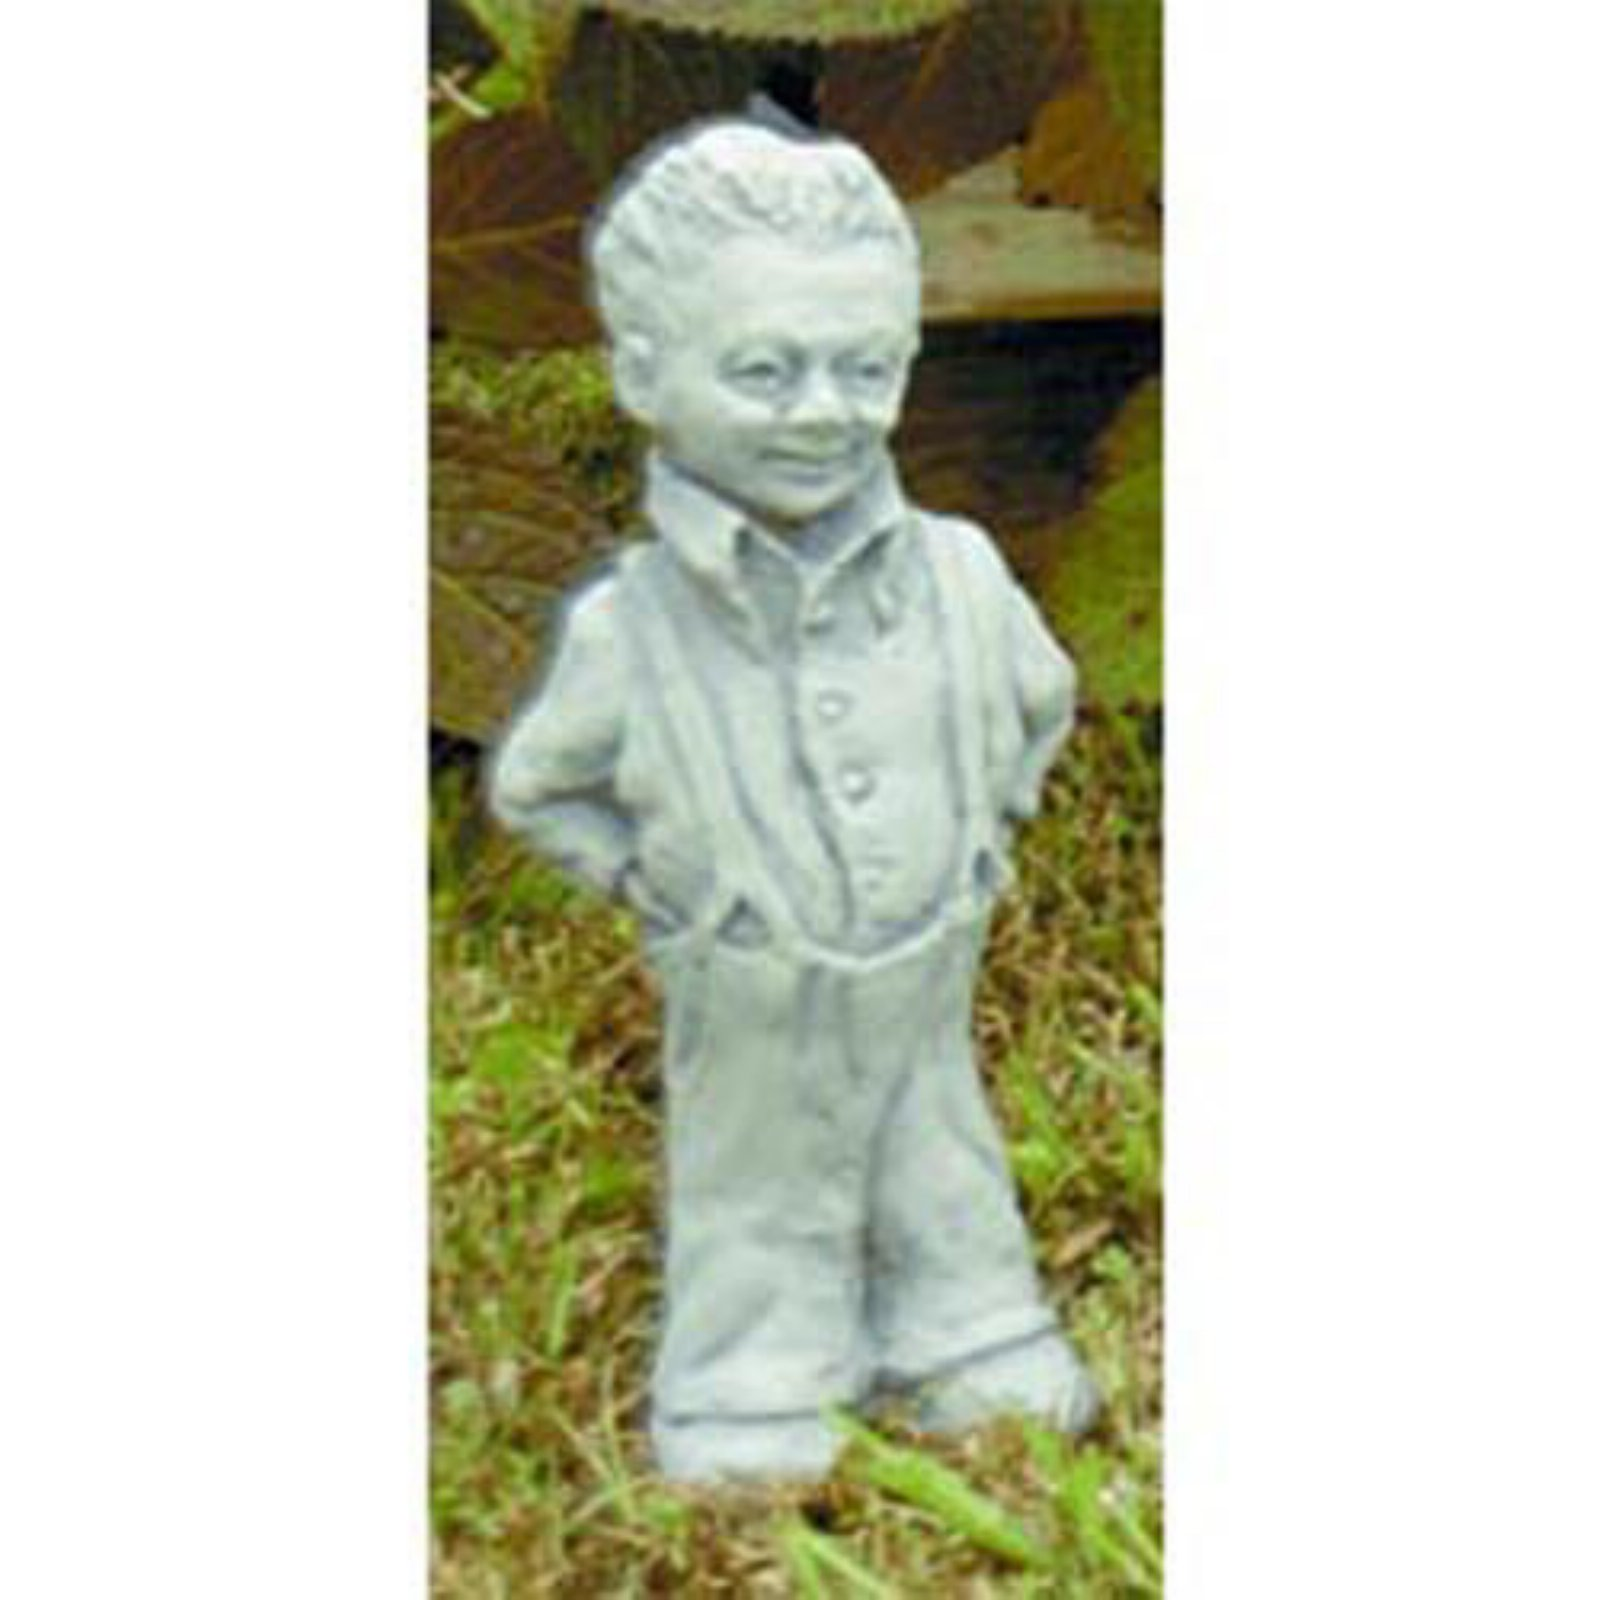 Michael the Garden Gnome by Brookfield Co